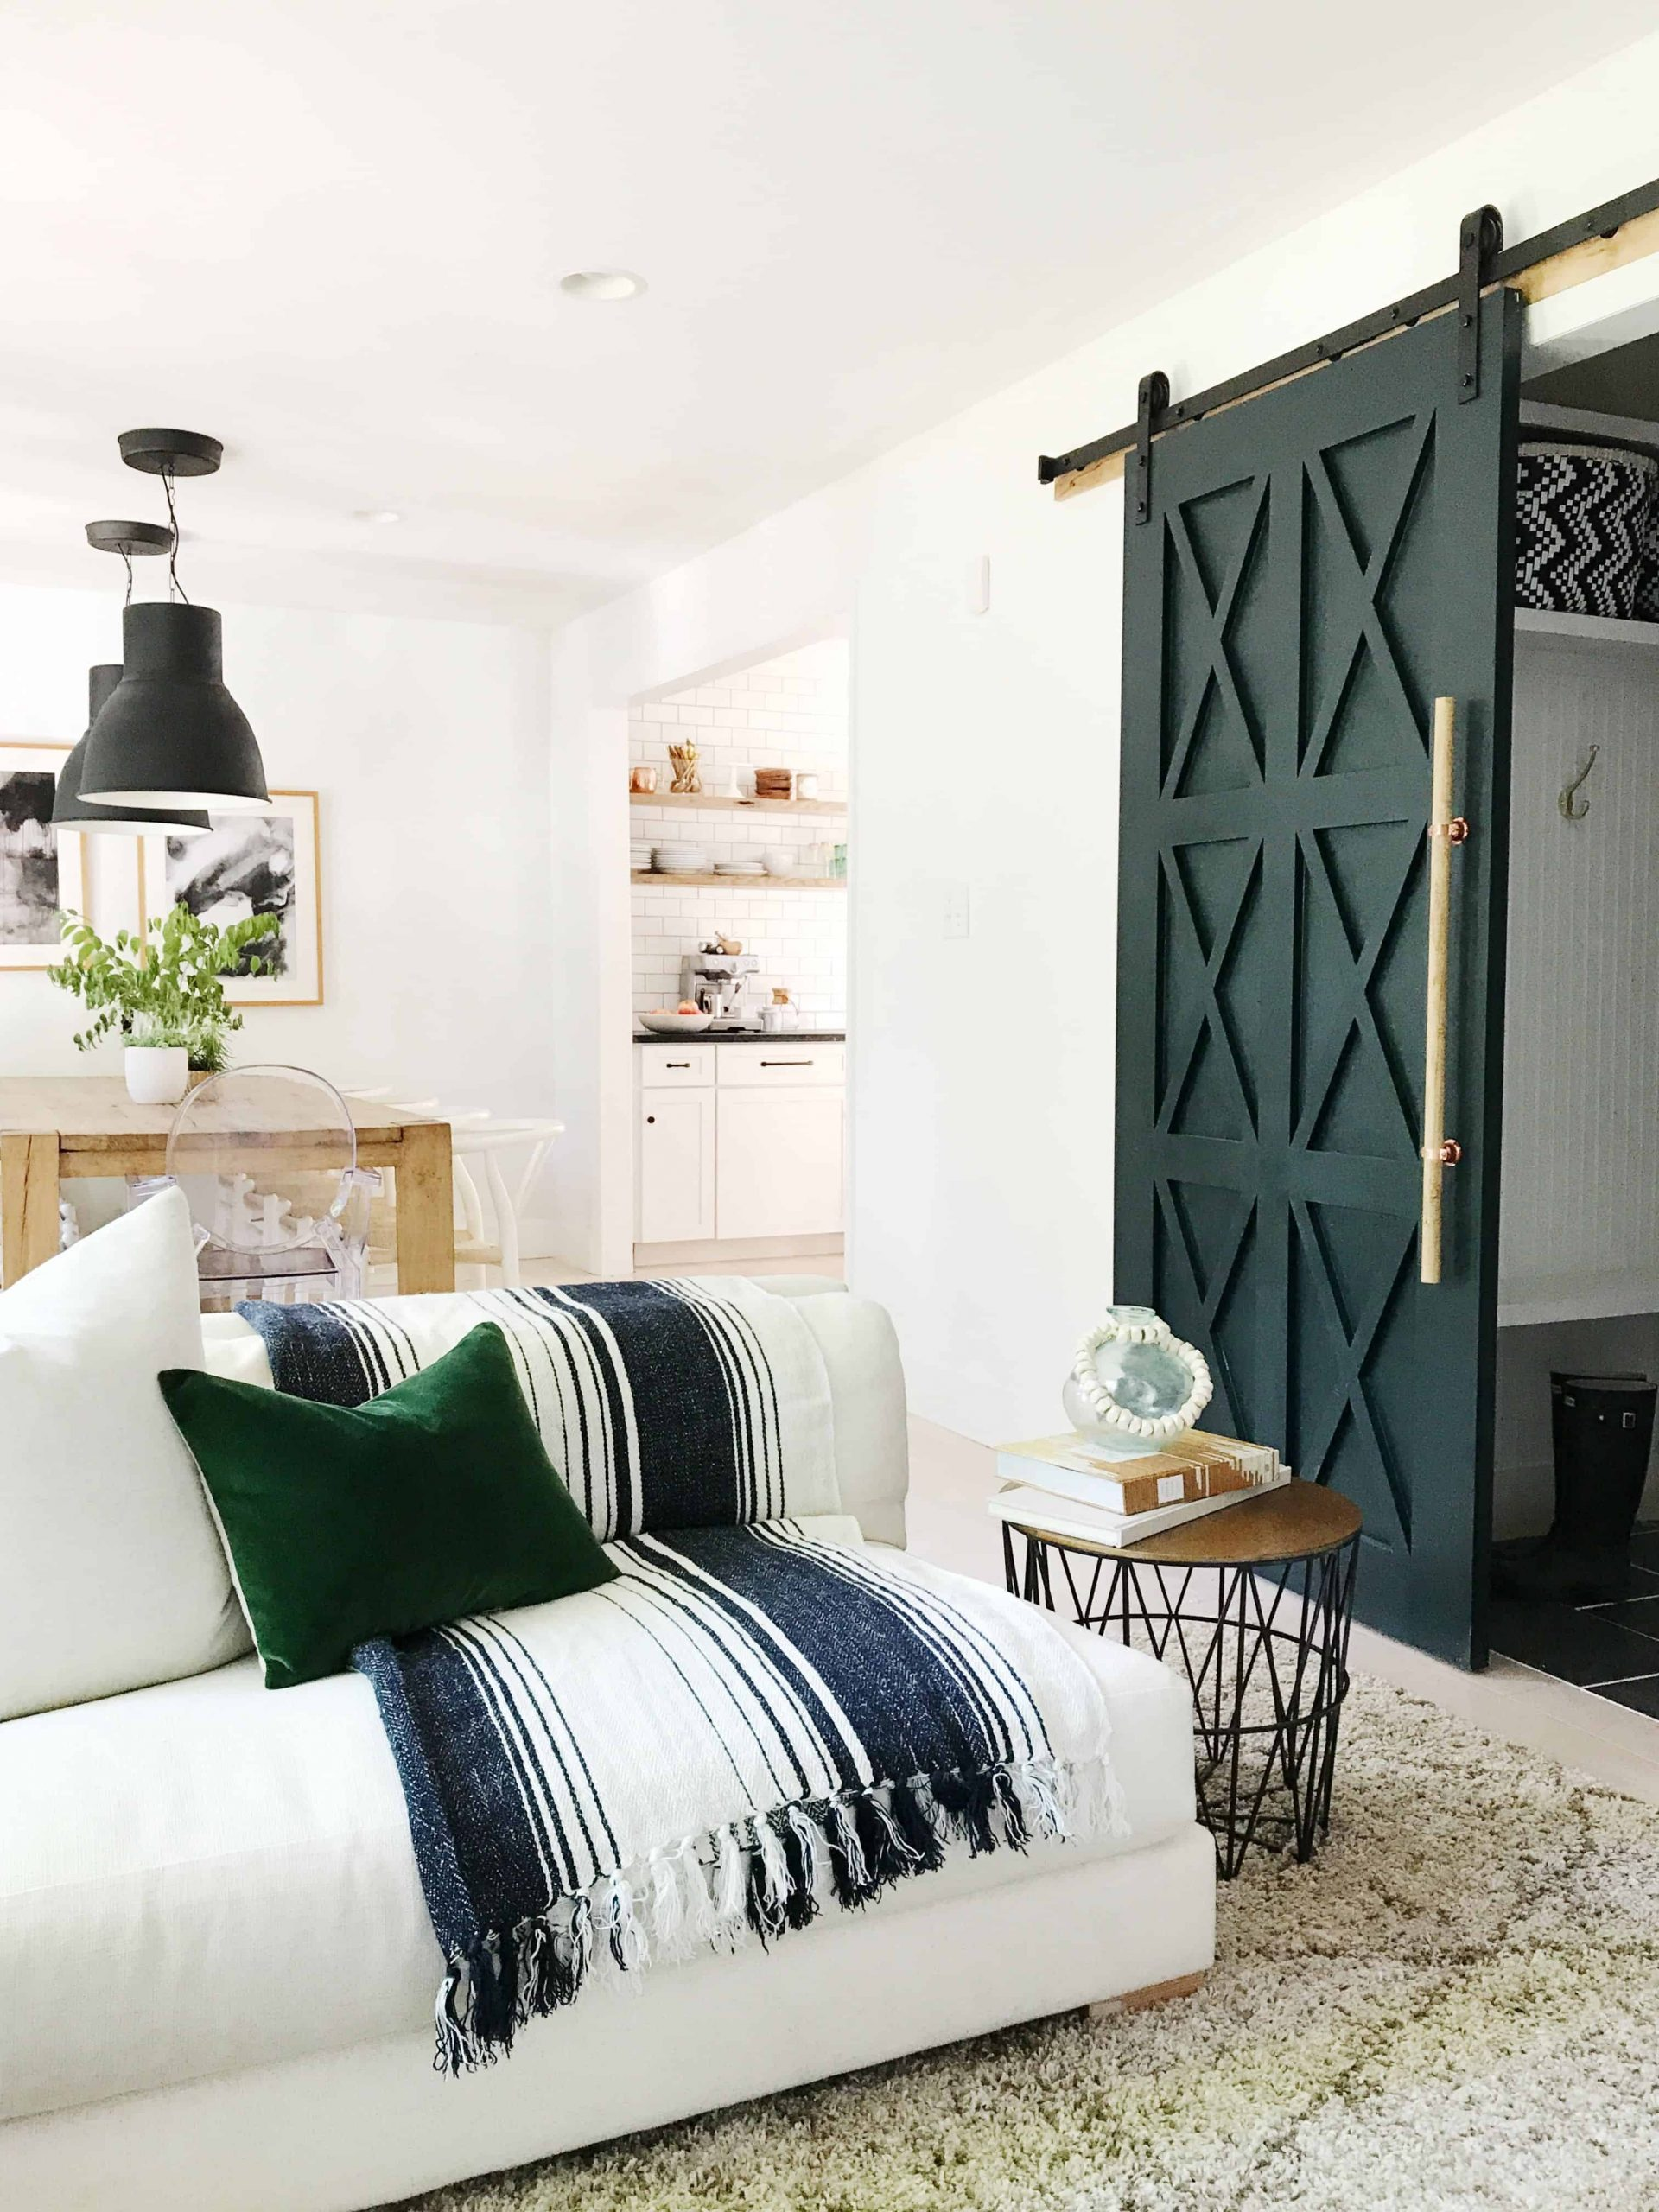 Barn doors The Highlight Of Fresh Feminine To Present The Most Appealing Living Room